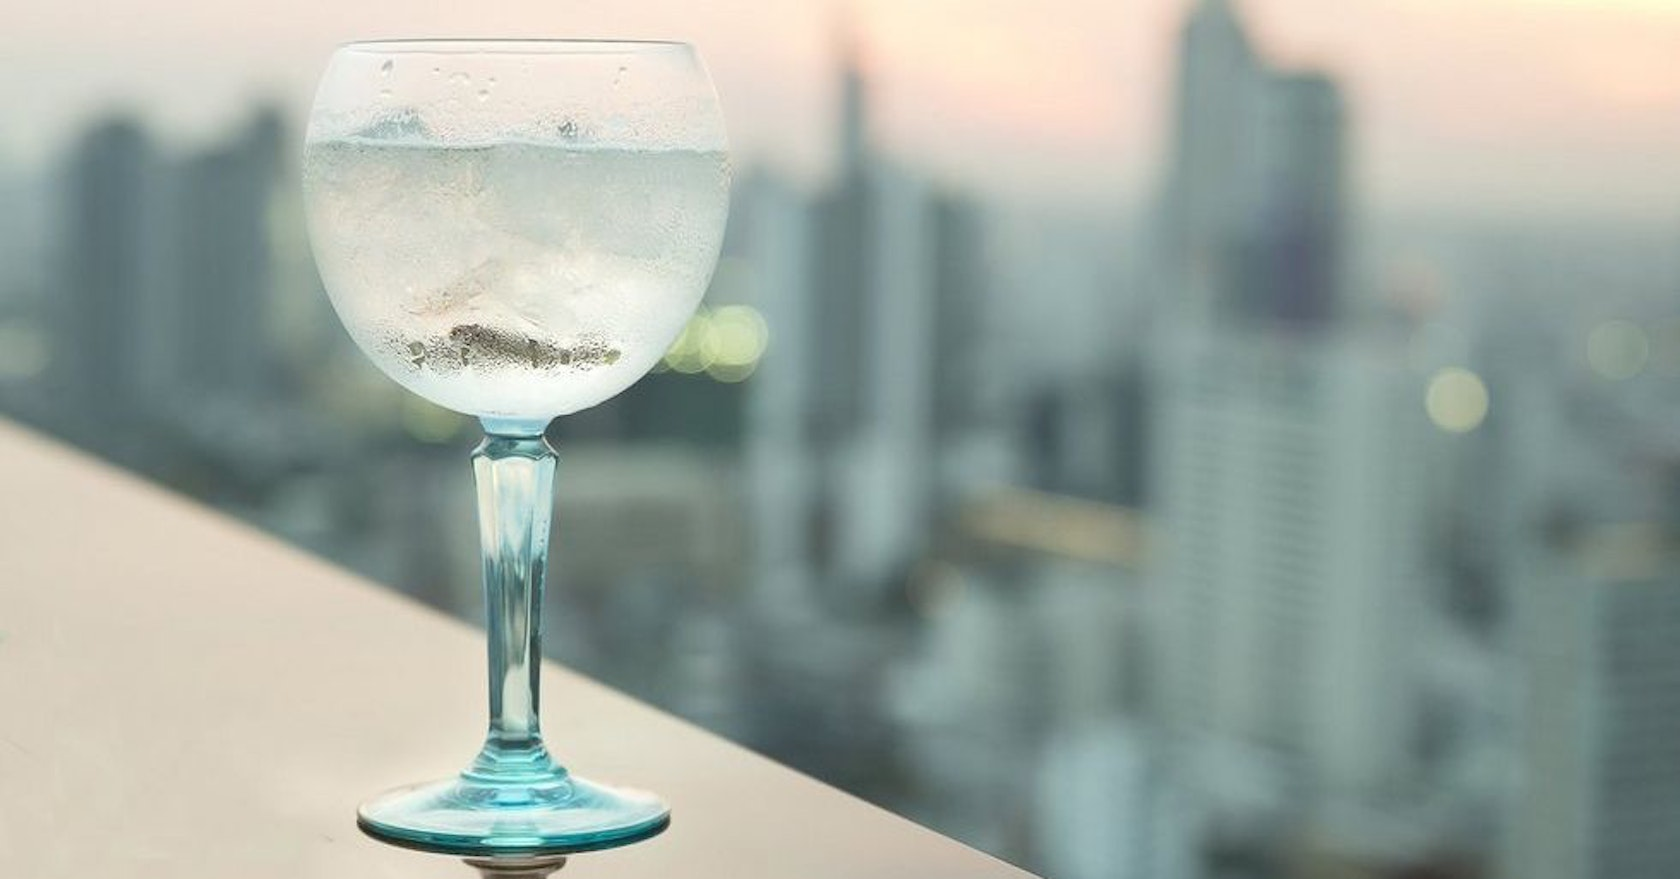 Gin lovers are probably all psychopaths, say experts